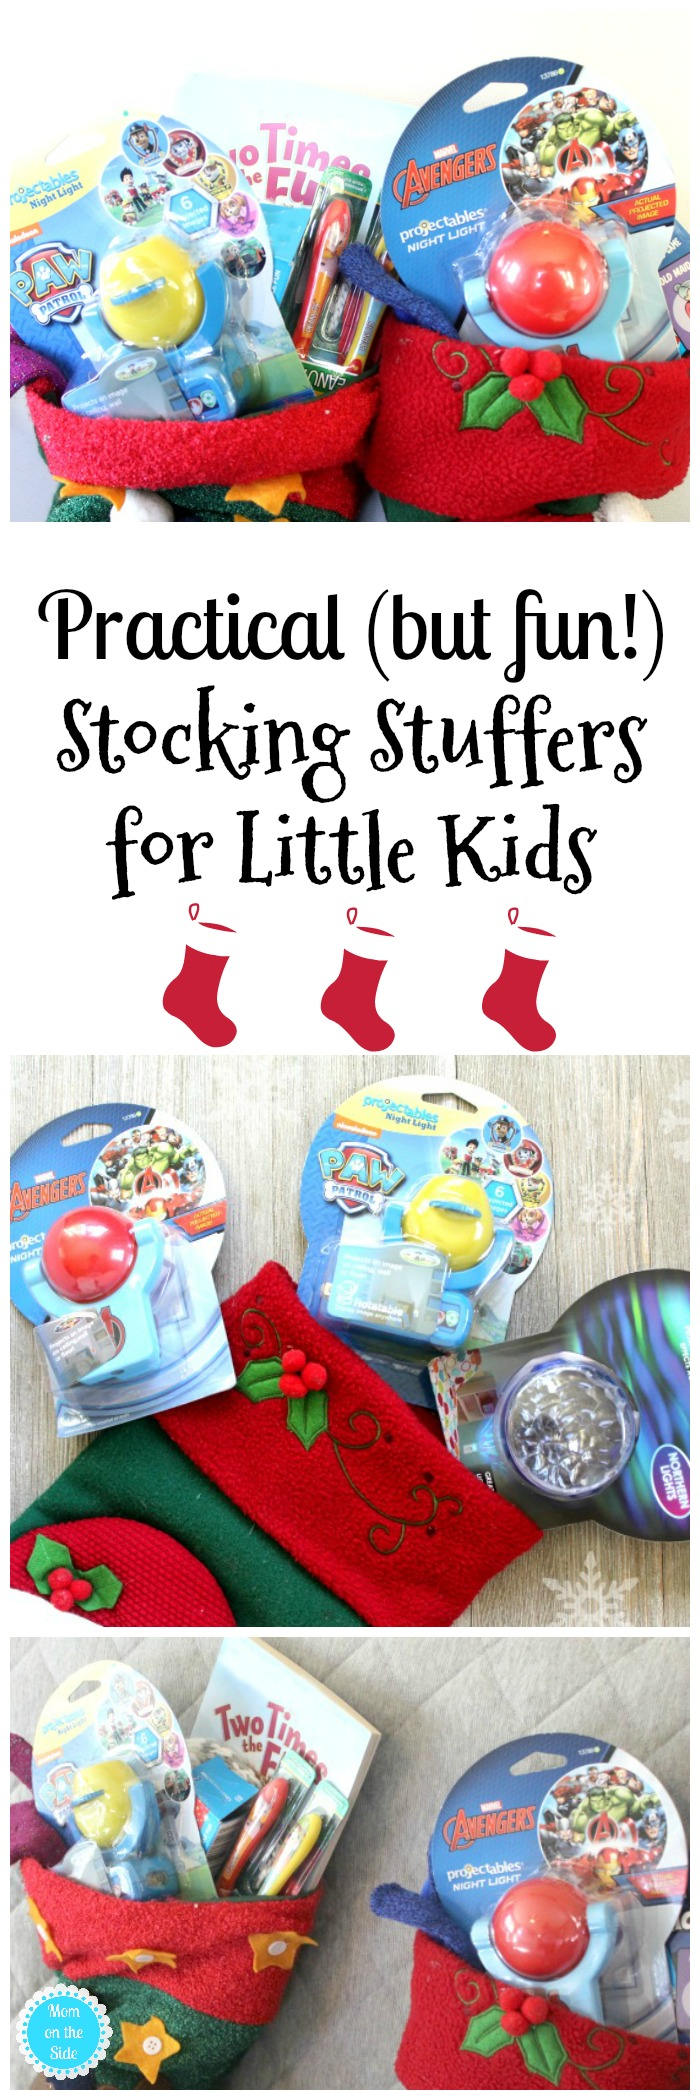 Fun Ideas for Stocking Stuffers for Little Kids including Projectables Night Lights